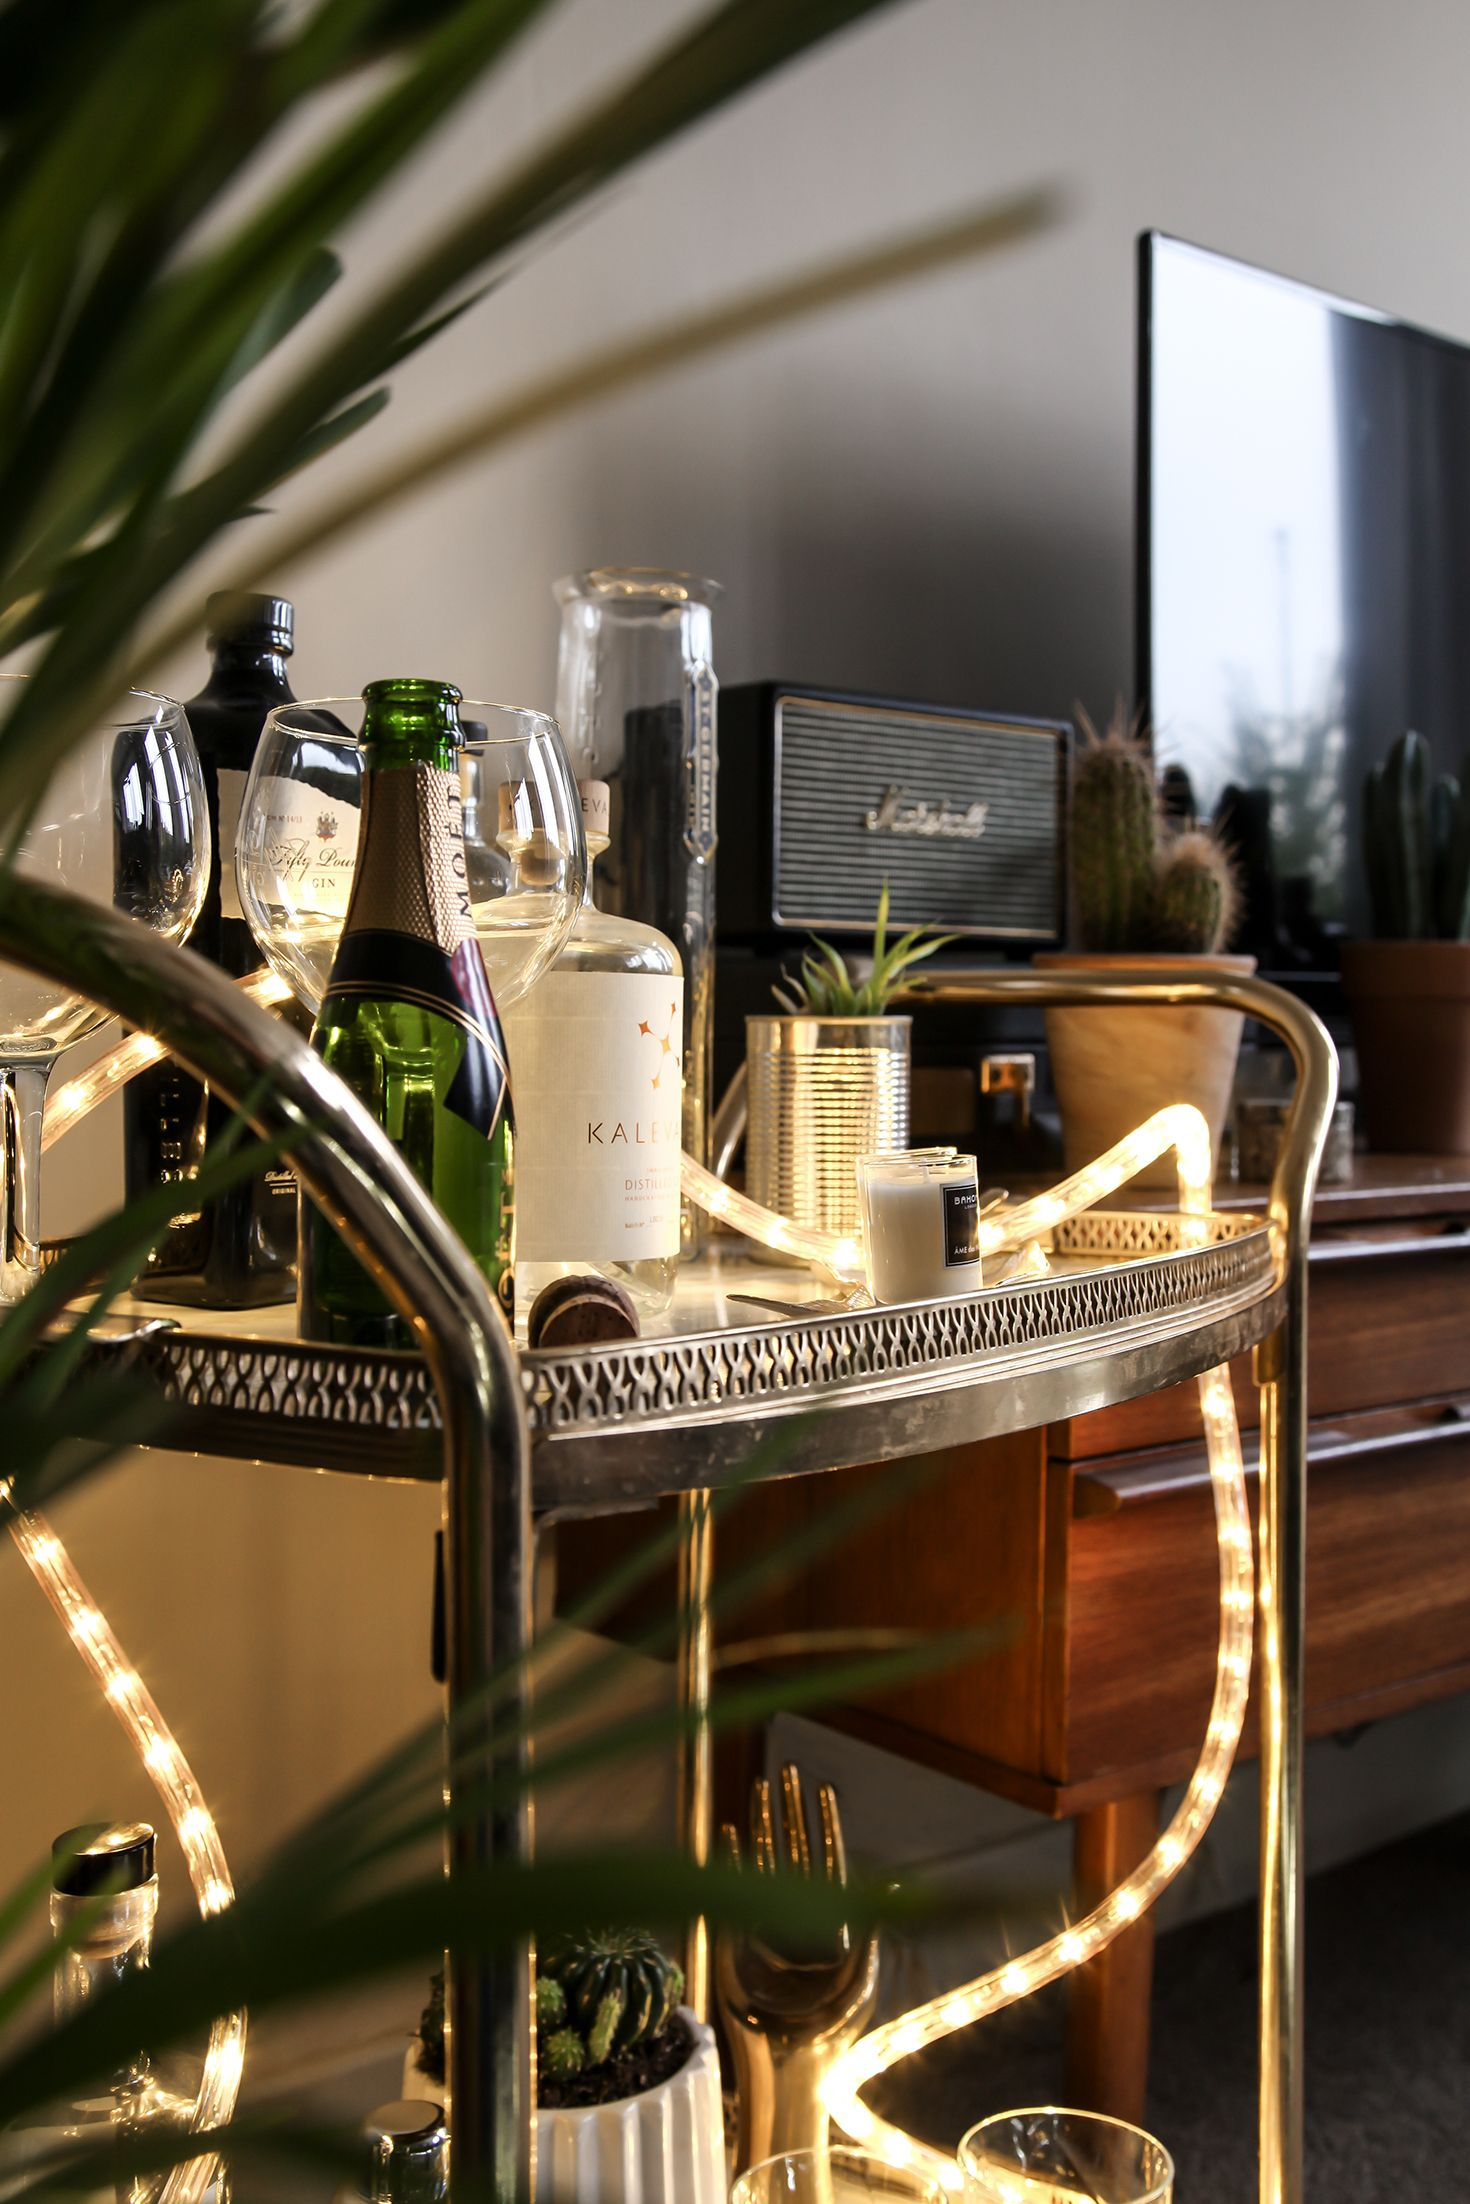 Brighten Up Your Bar Cart With A Strip Of Rope Light Ropelight Fairylights Style Homestyling Homedecor Homedecoridea Led Rope Lights Rope Light Led Rope